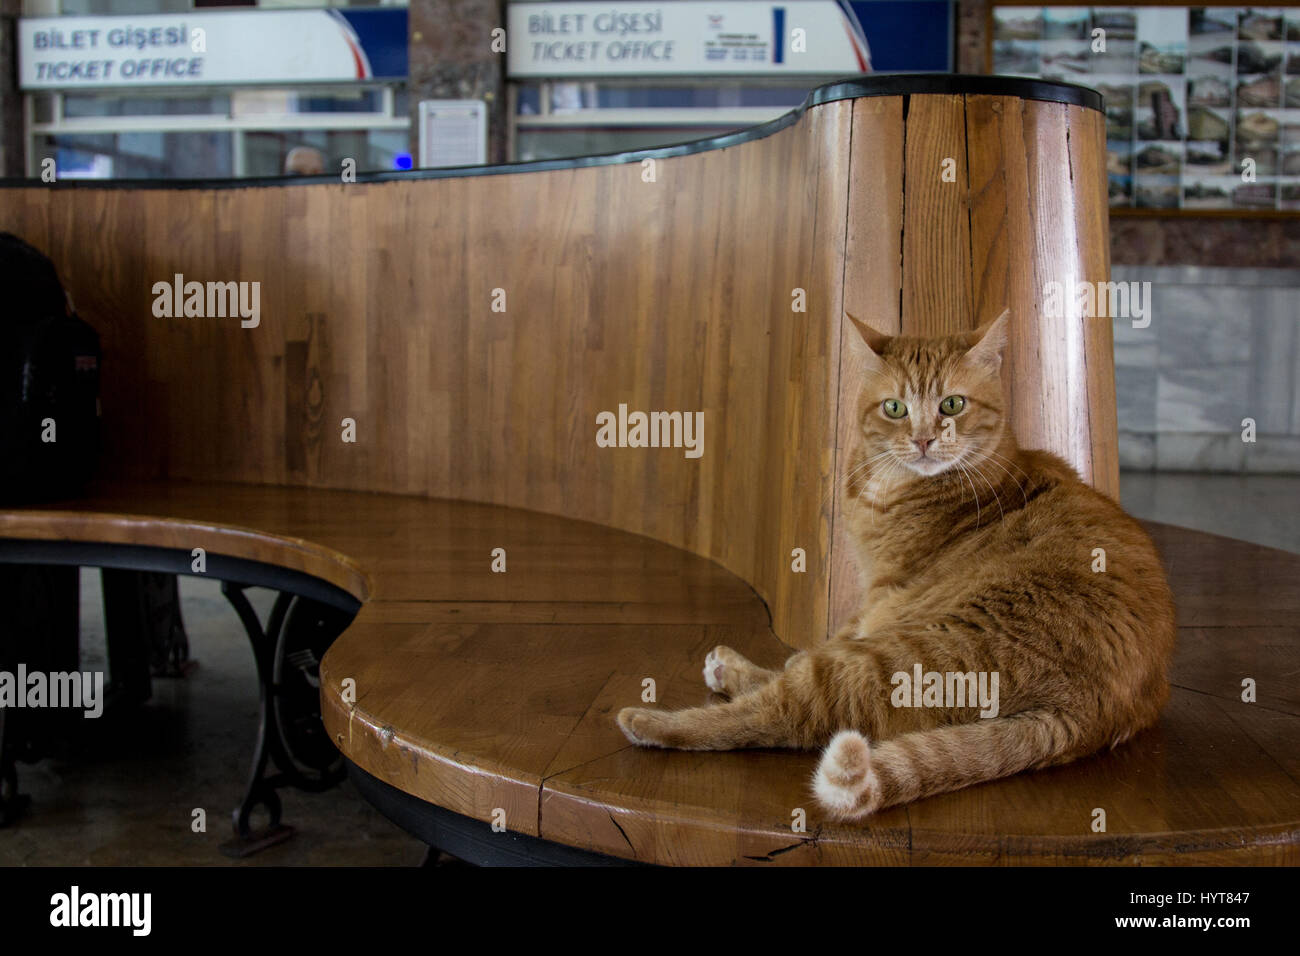 Stray cat resting in Istanbul Sirkeci train station's waiting room, Turkey  Picture of a ginger stray cat laid - Stock Image